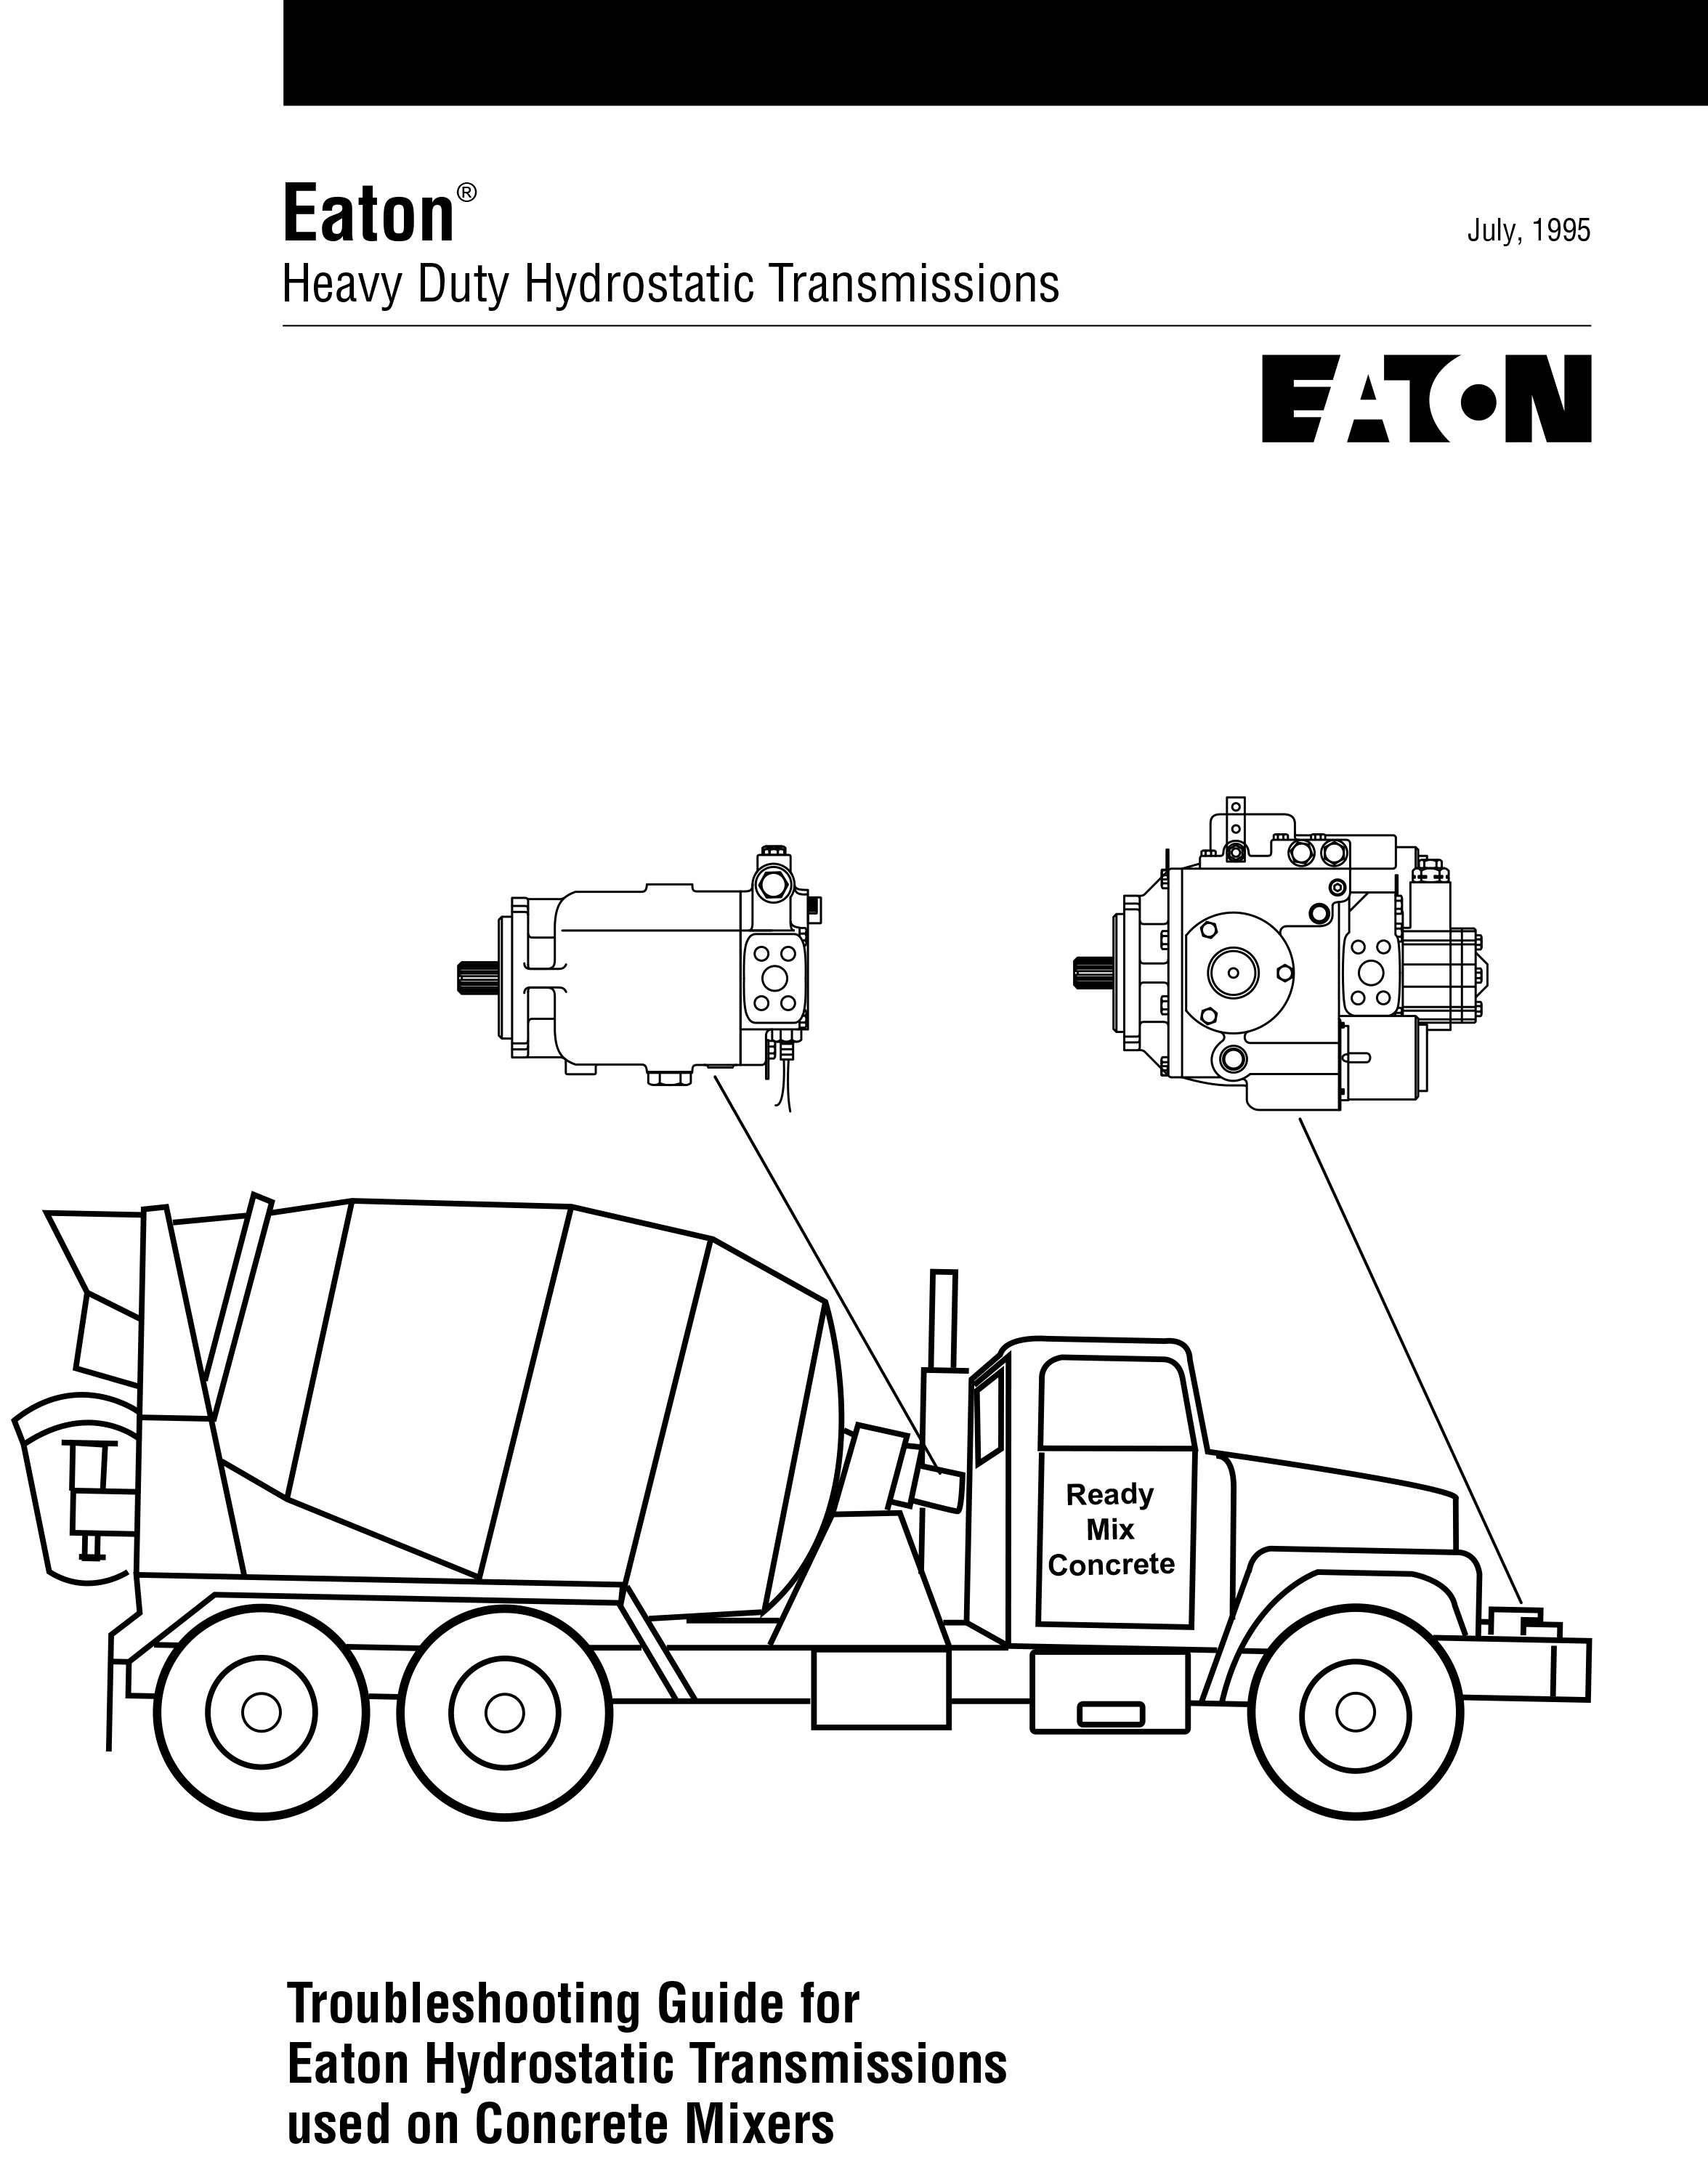 troubleshooting-guide-hydrostatic-transmissions.jpg